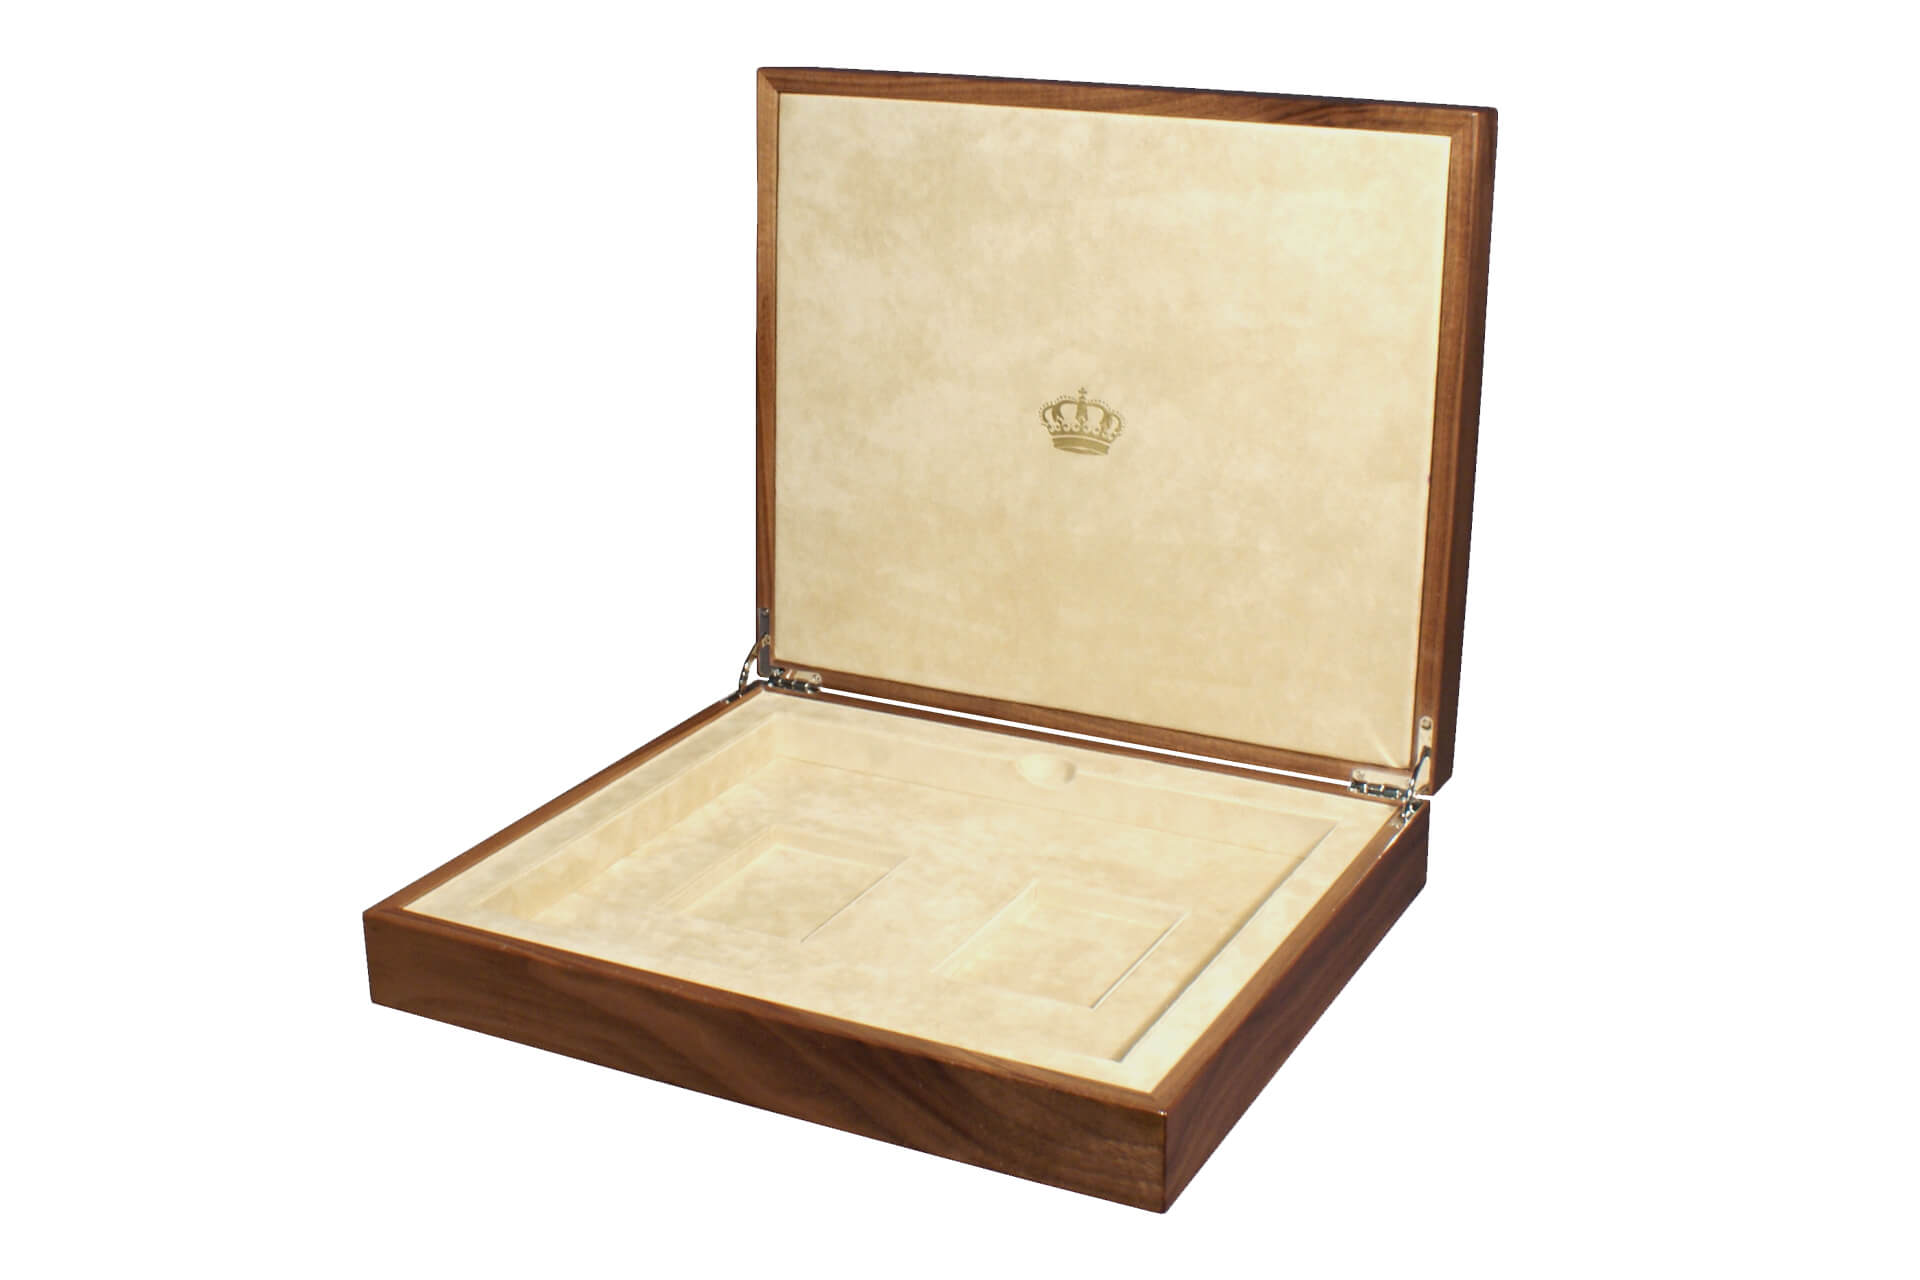 luxury wooden presentation box b-h110